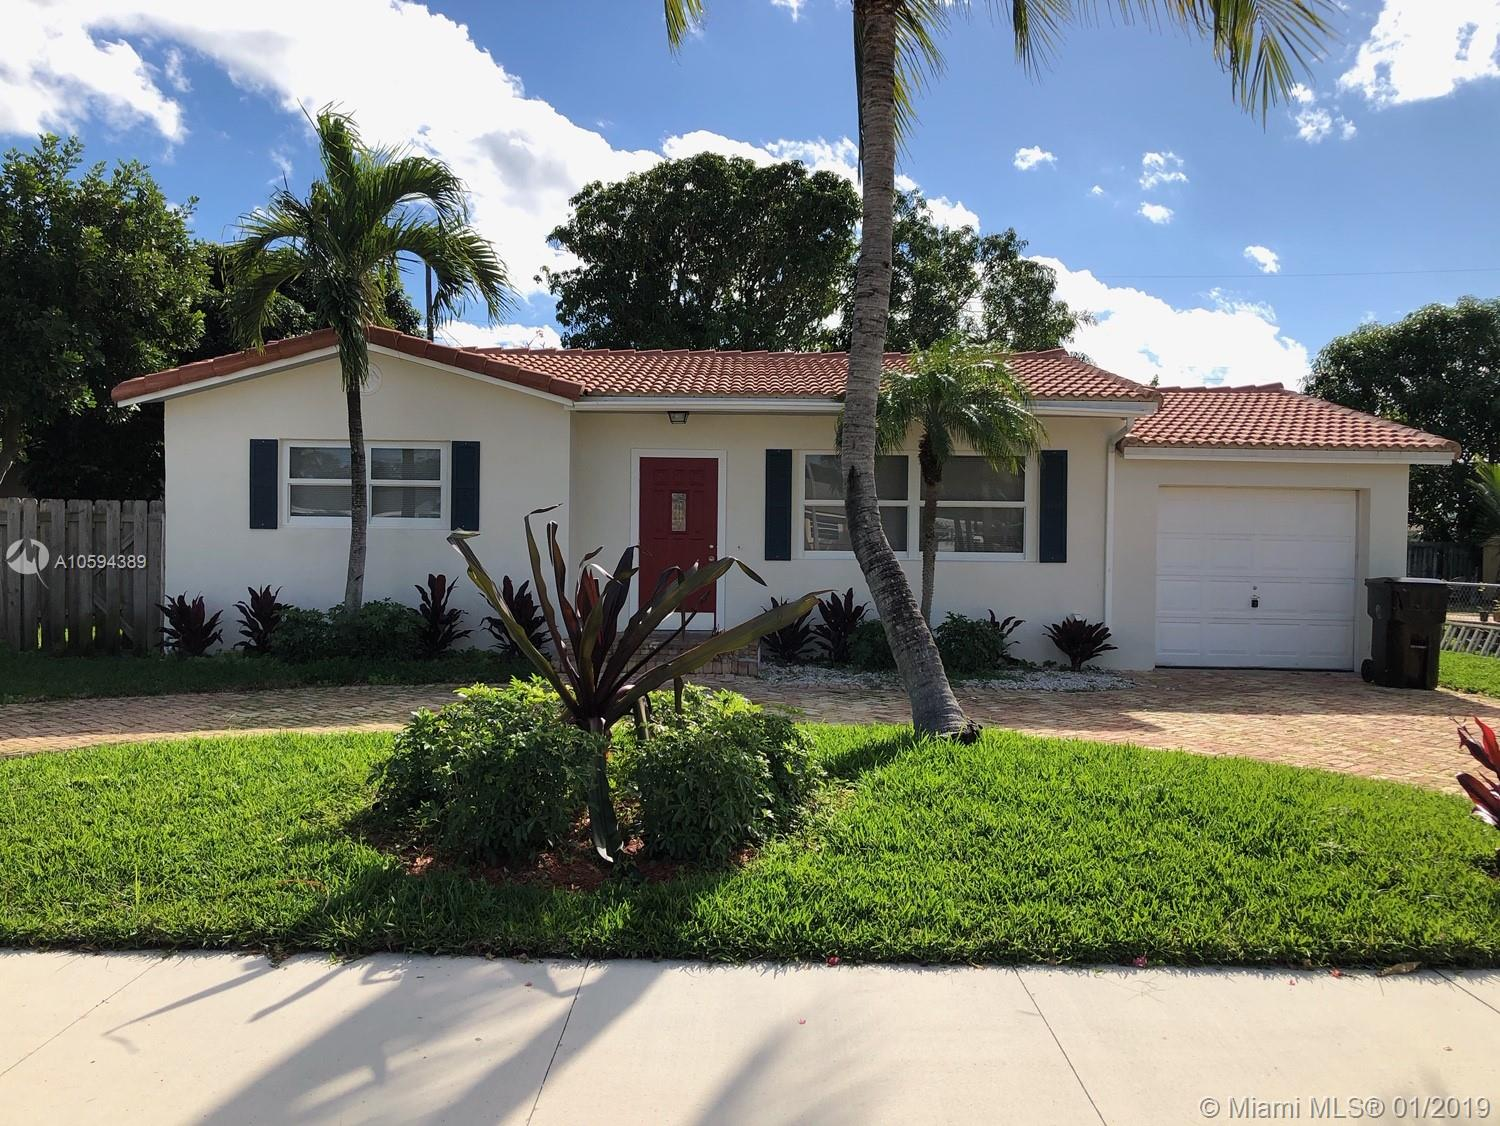 344 Forest Hill Blvd, West Palm Beach, FL 33405